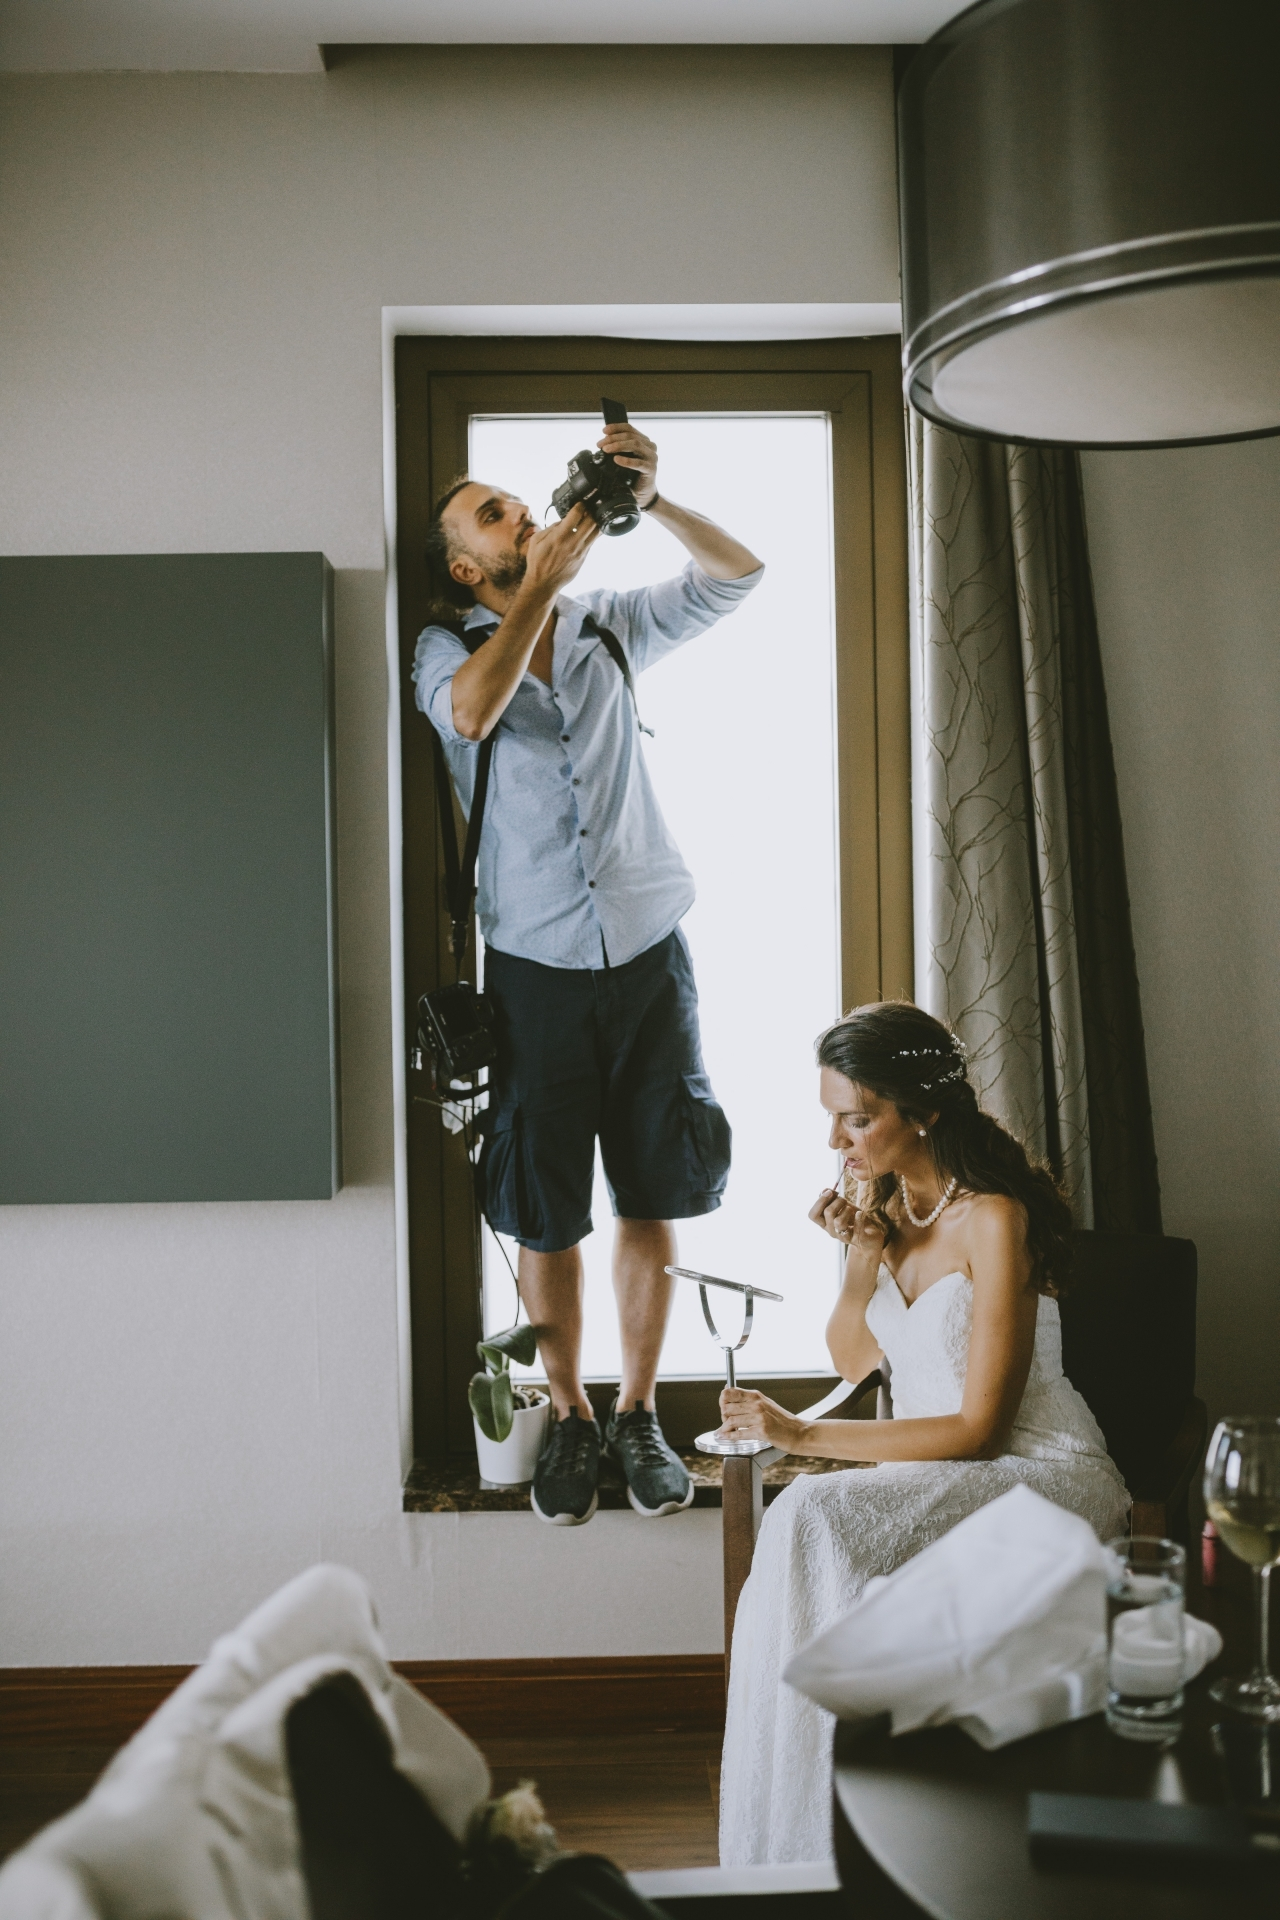 İstanbul photographer working at a wedding with the bride getting ready.